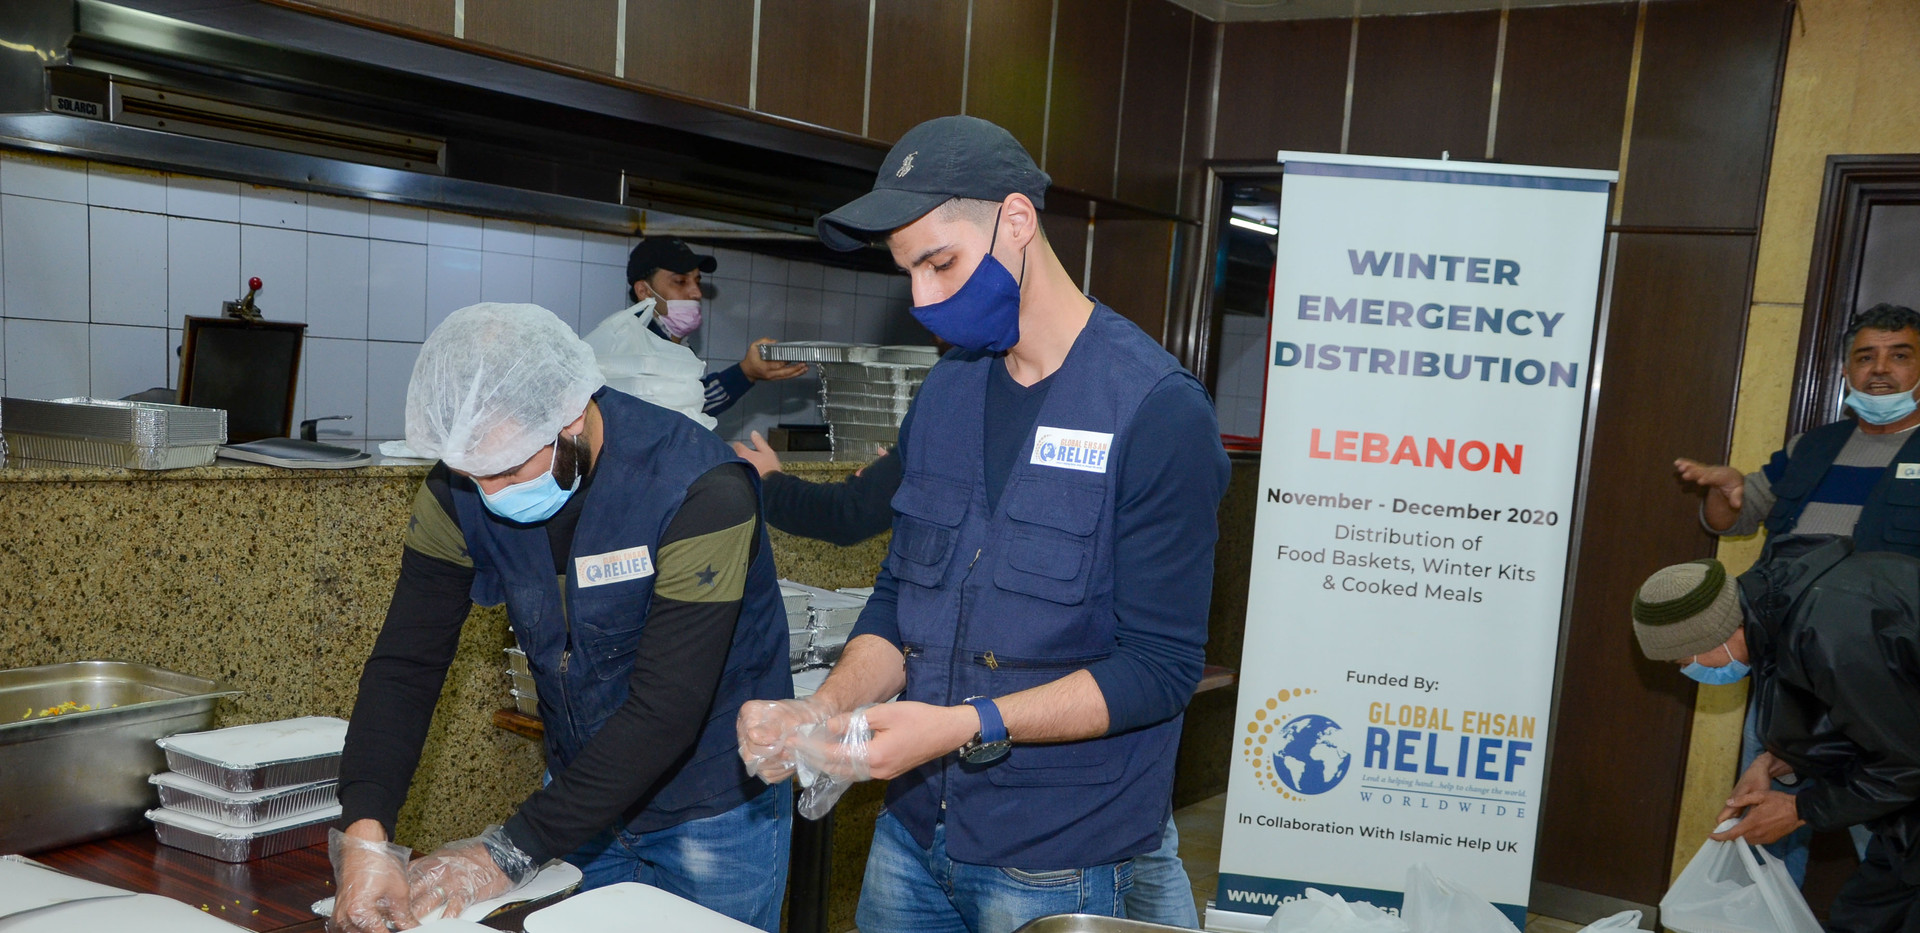 Distribution of Cooked Meals in Lebanon